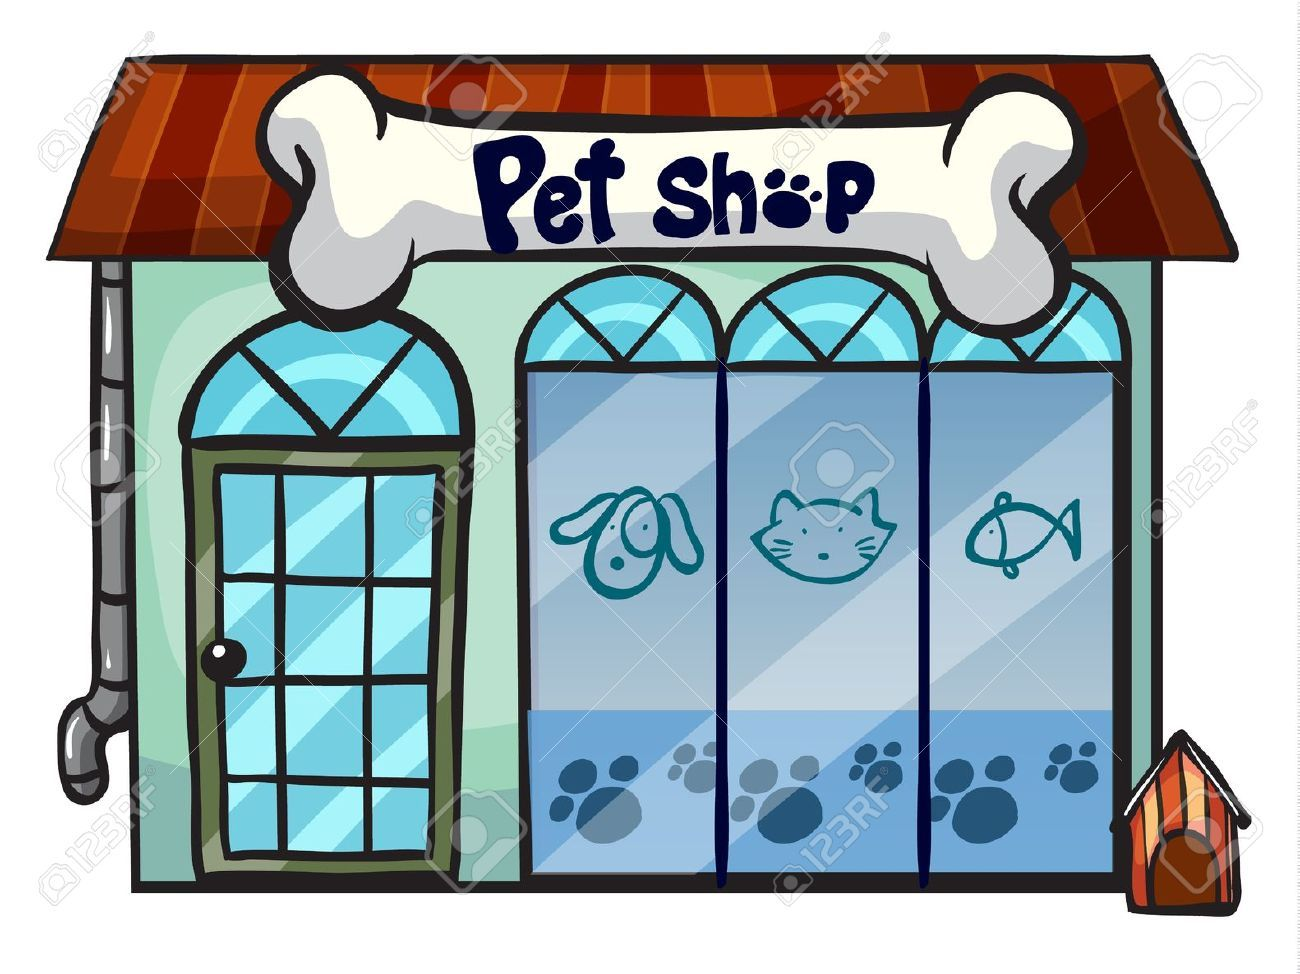 Illustration Of A Pet Shop On A White Background Shop Illustration Pet Shop Diy Stuffed Animals